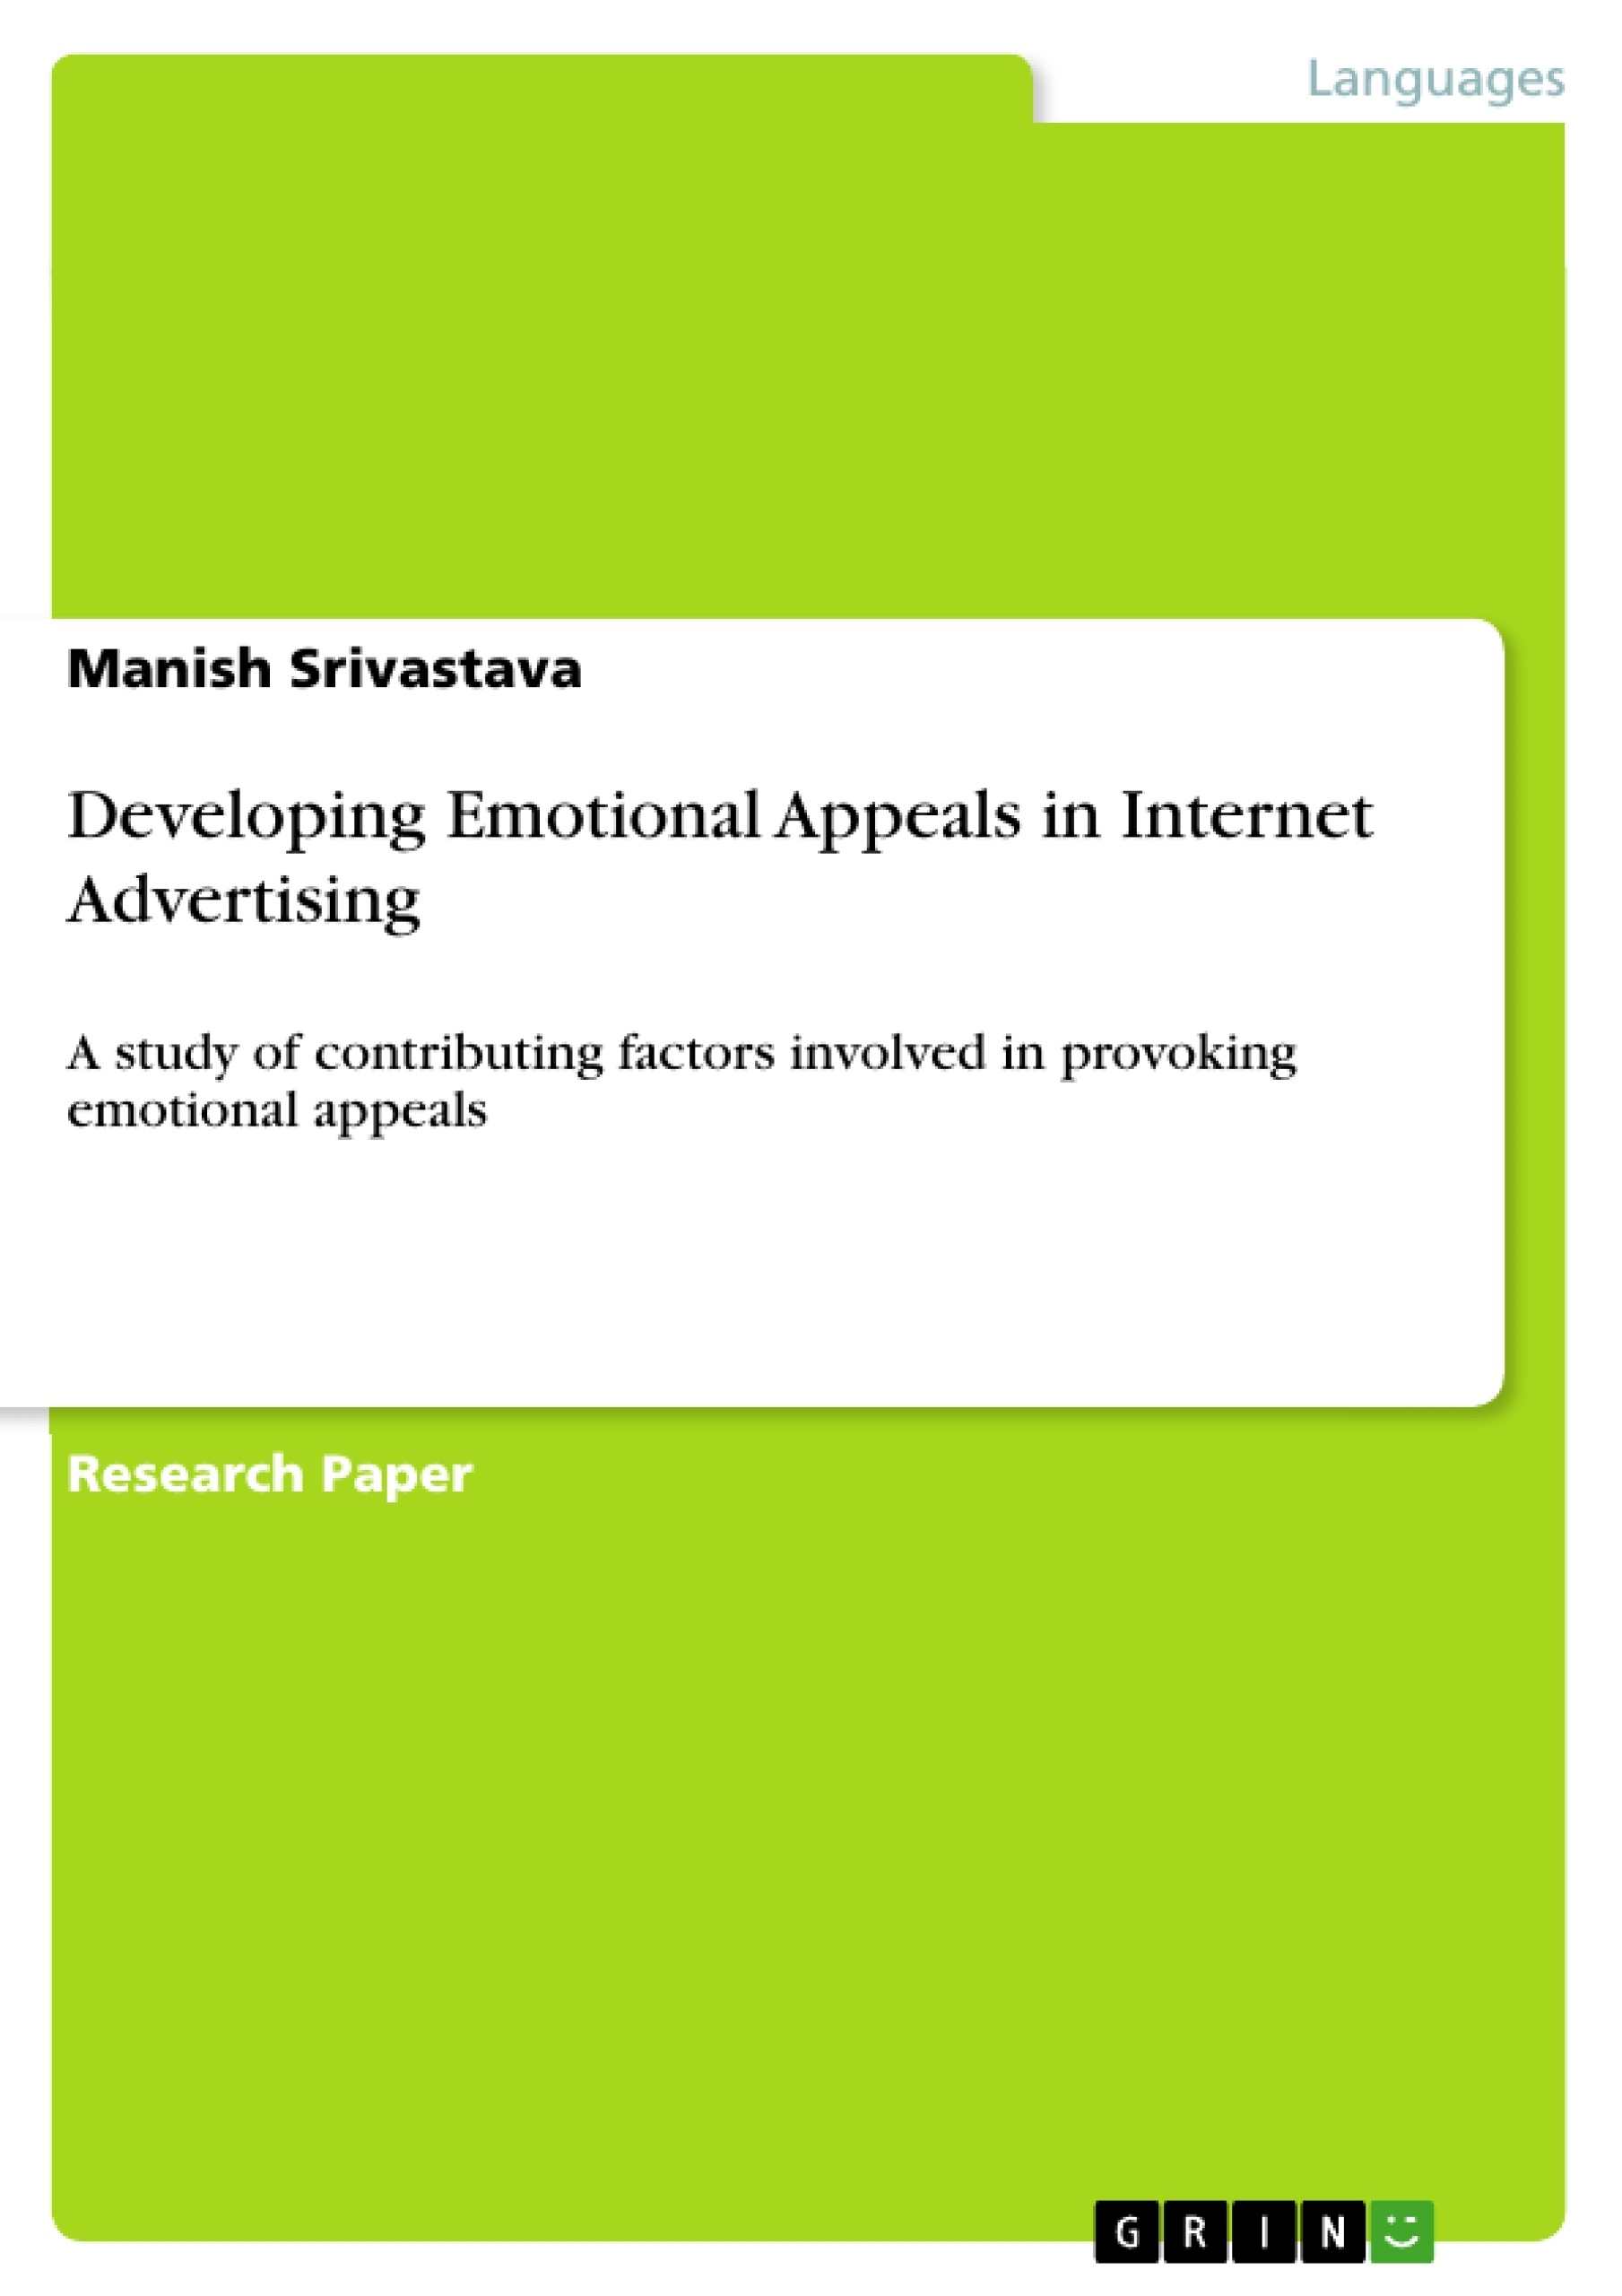 Title: Developing Emotional Appeals in Internet Advertising